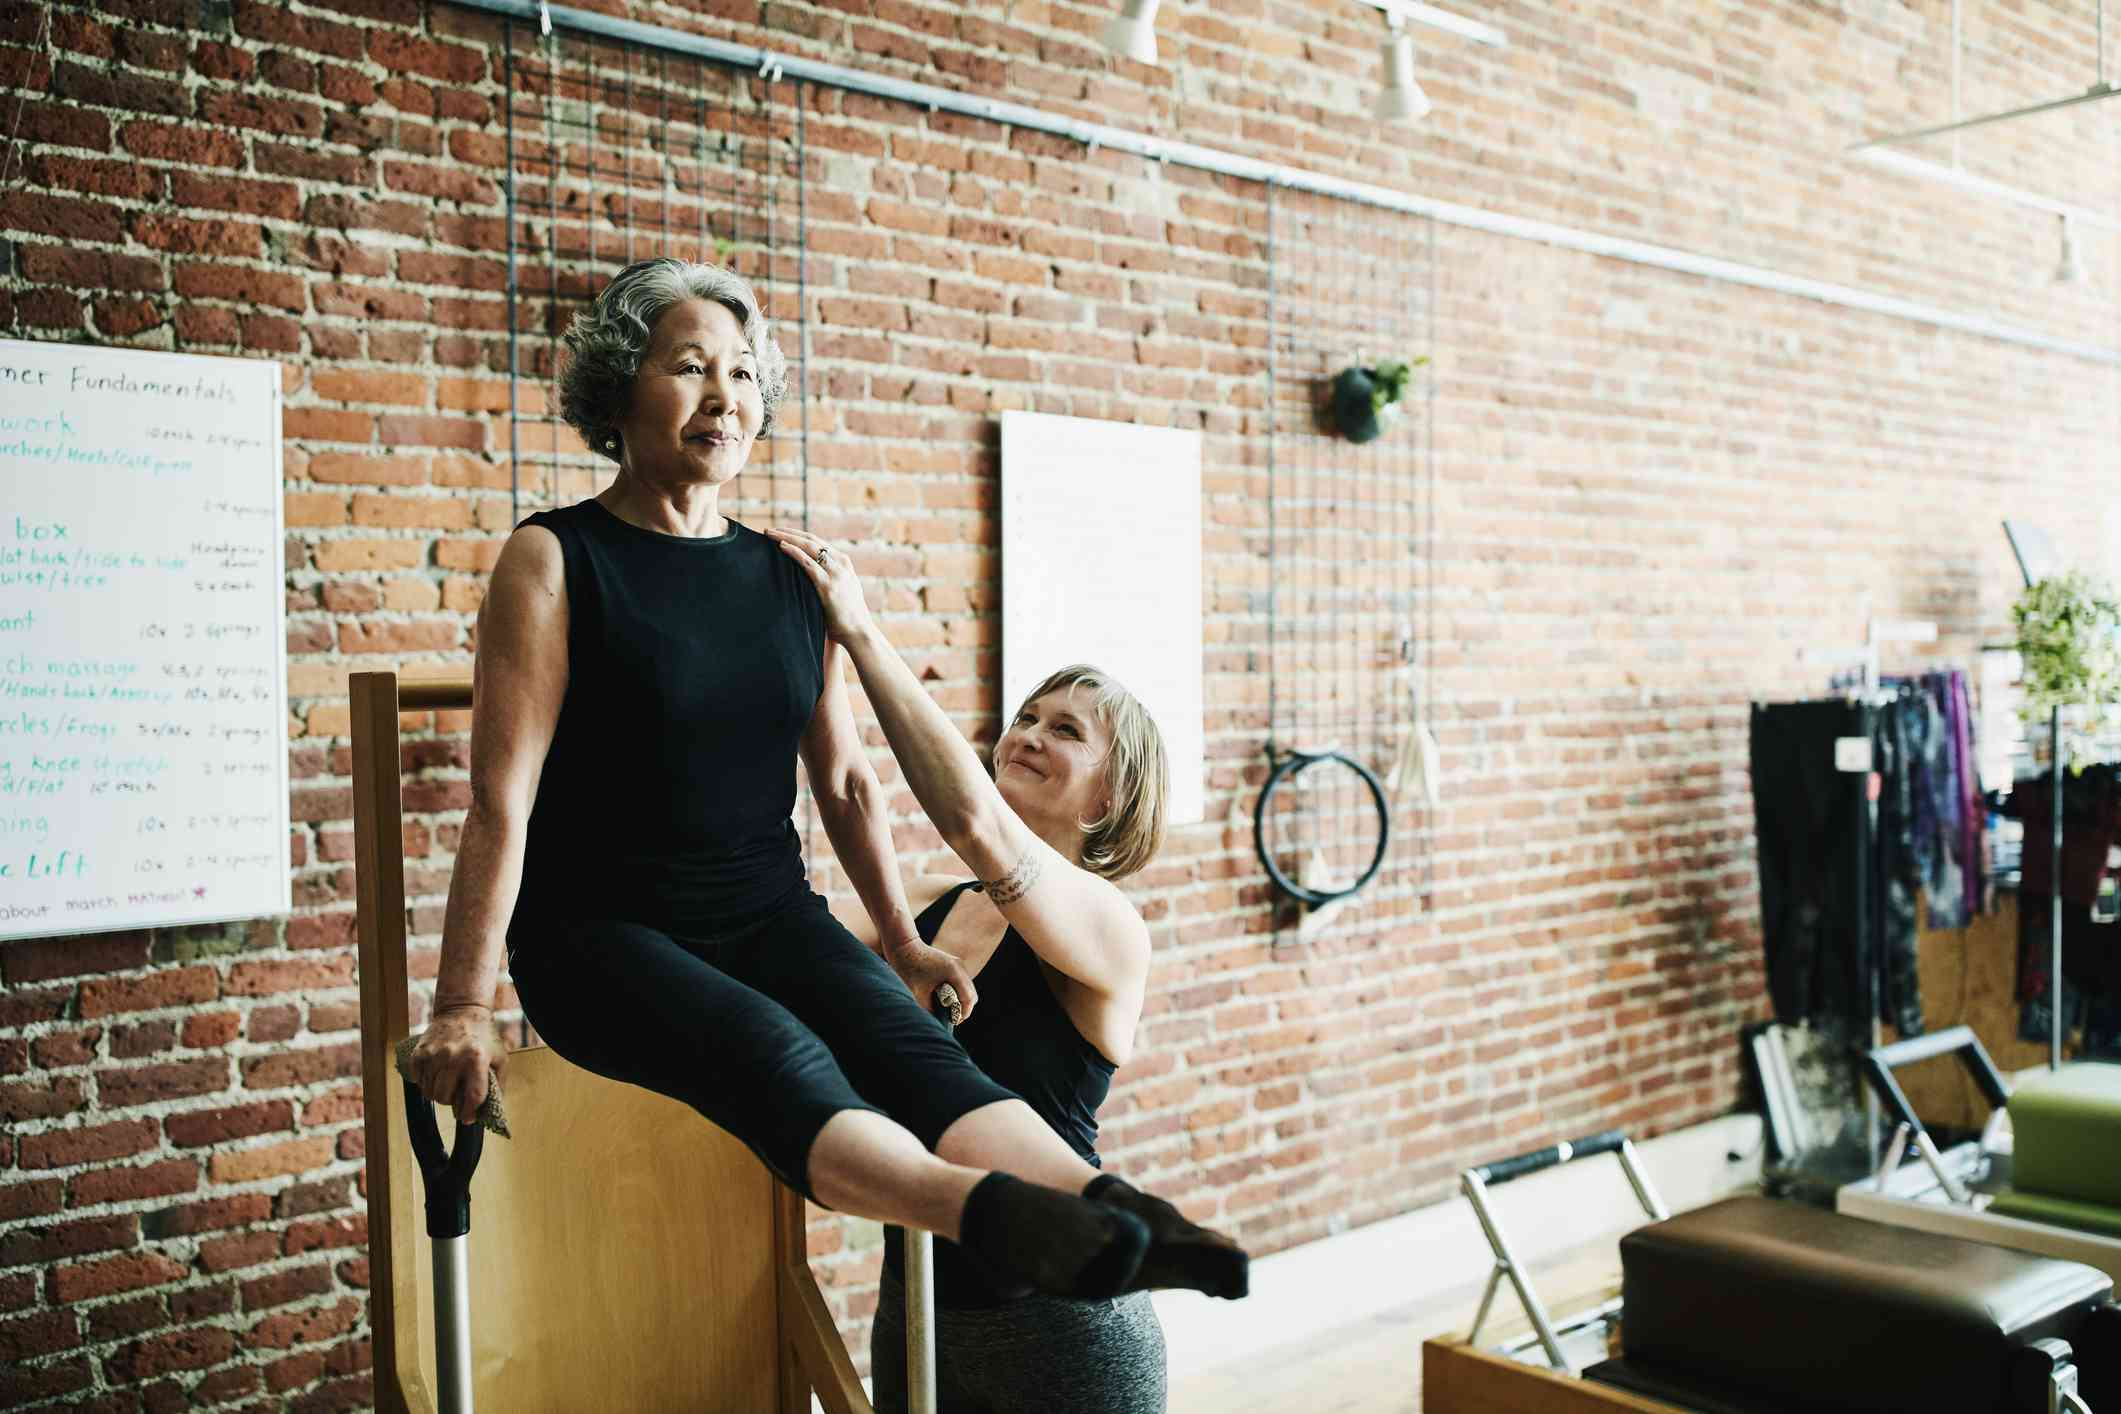 Female pilates instructor assisting mature student on high-low chair during class in exercise studio